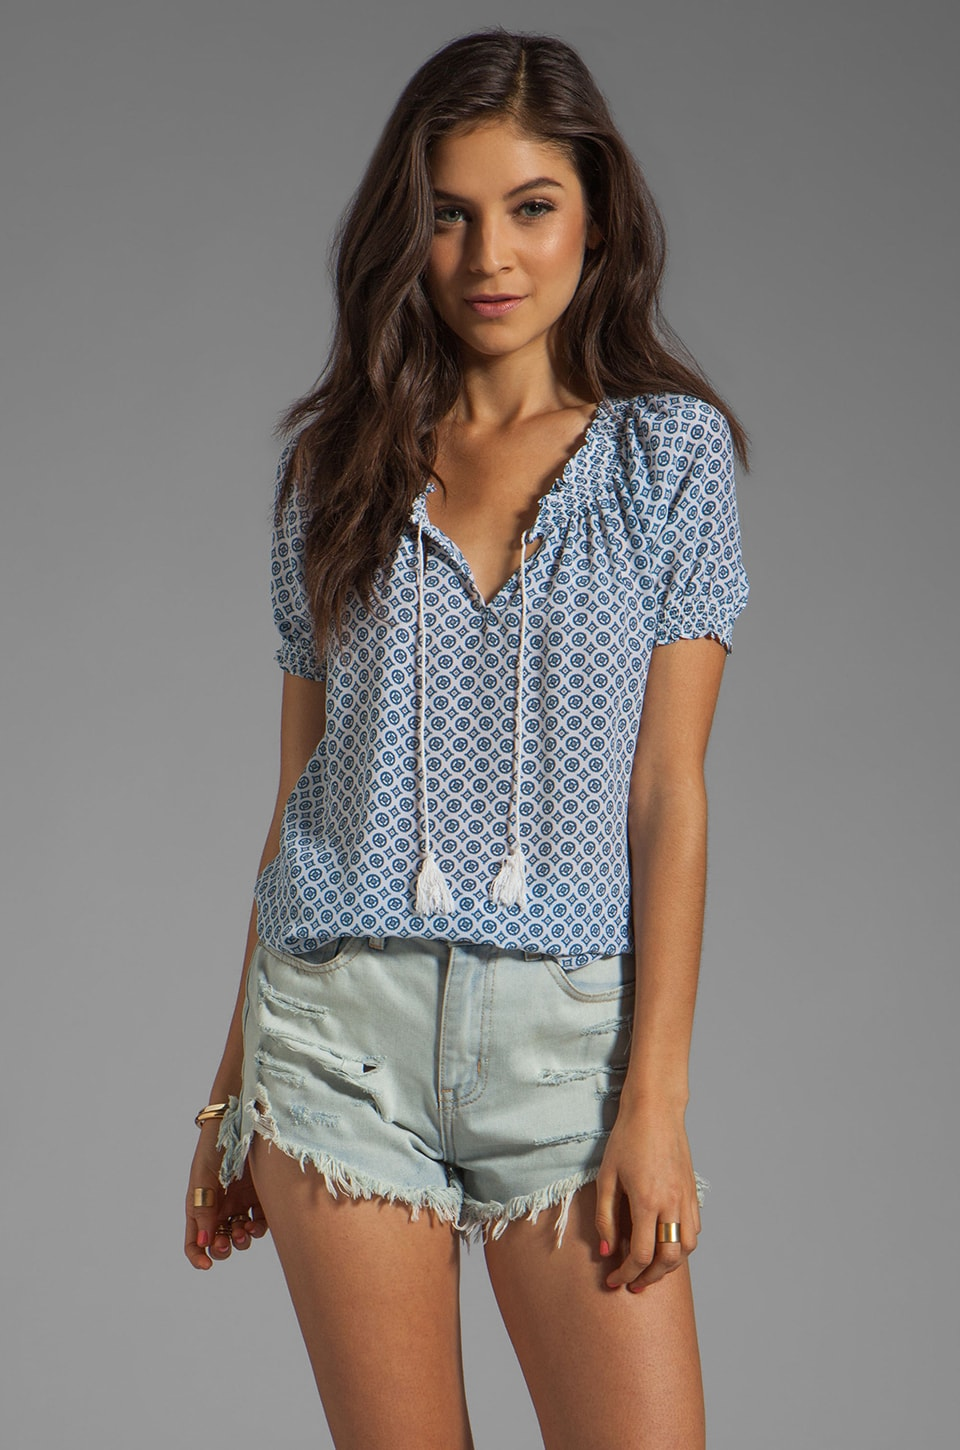 Joie Masha Medallion Print Top in Porcelain